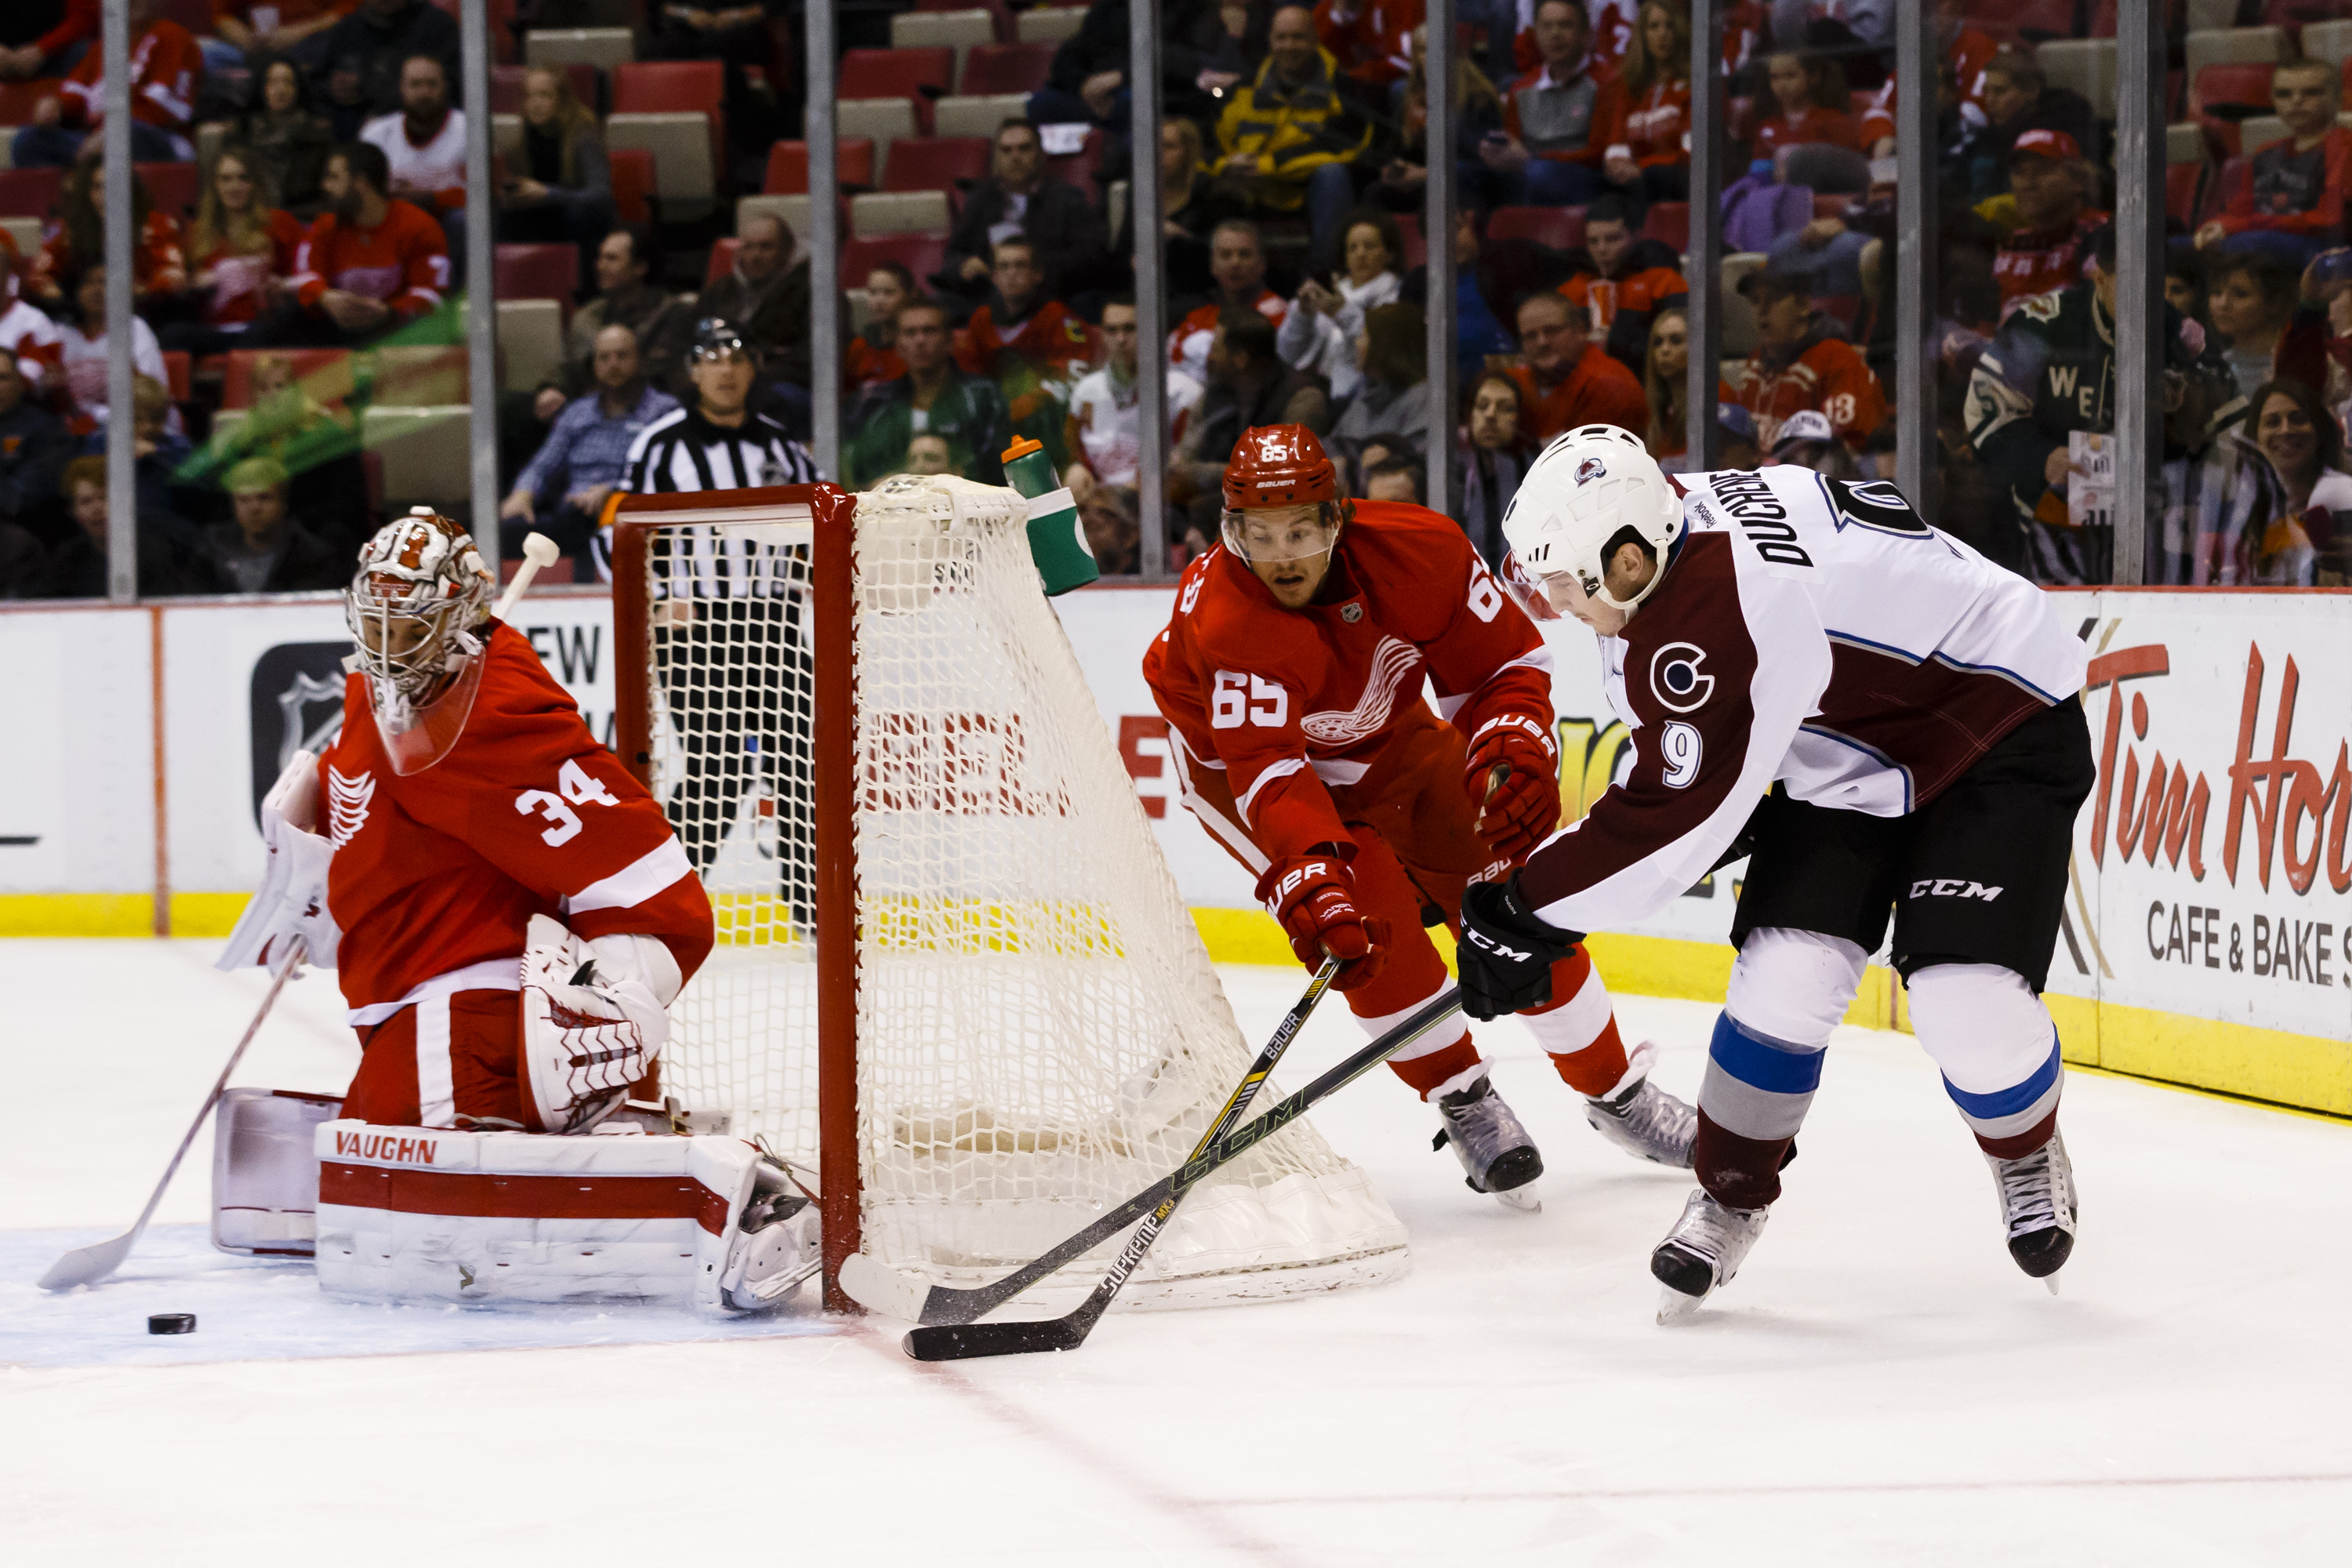 9111068-nhl-colorado-avalanche-at-detroit-red-wings